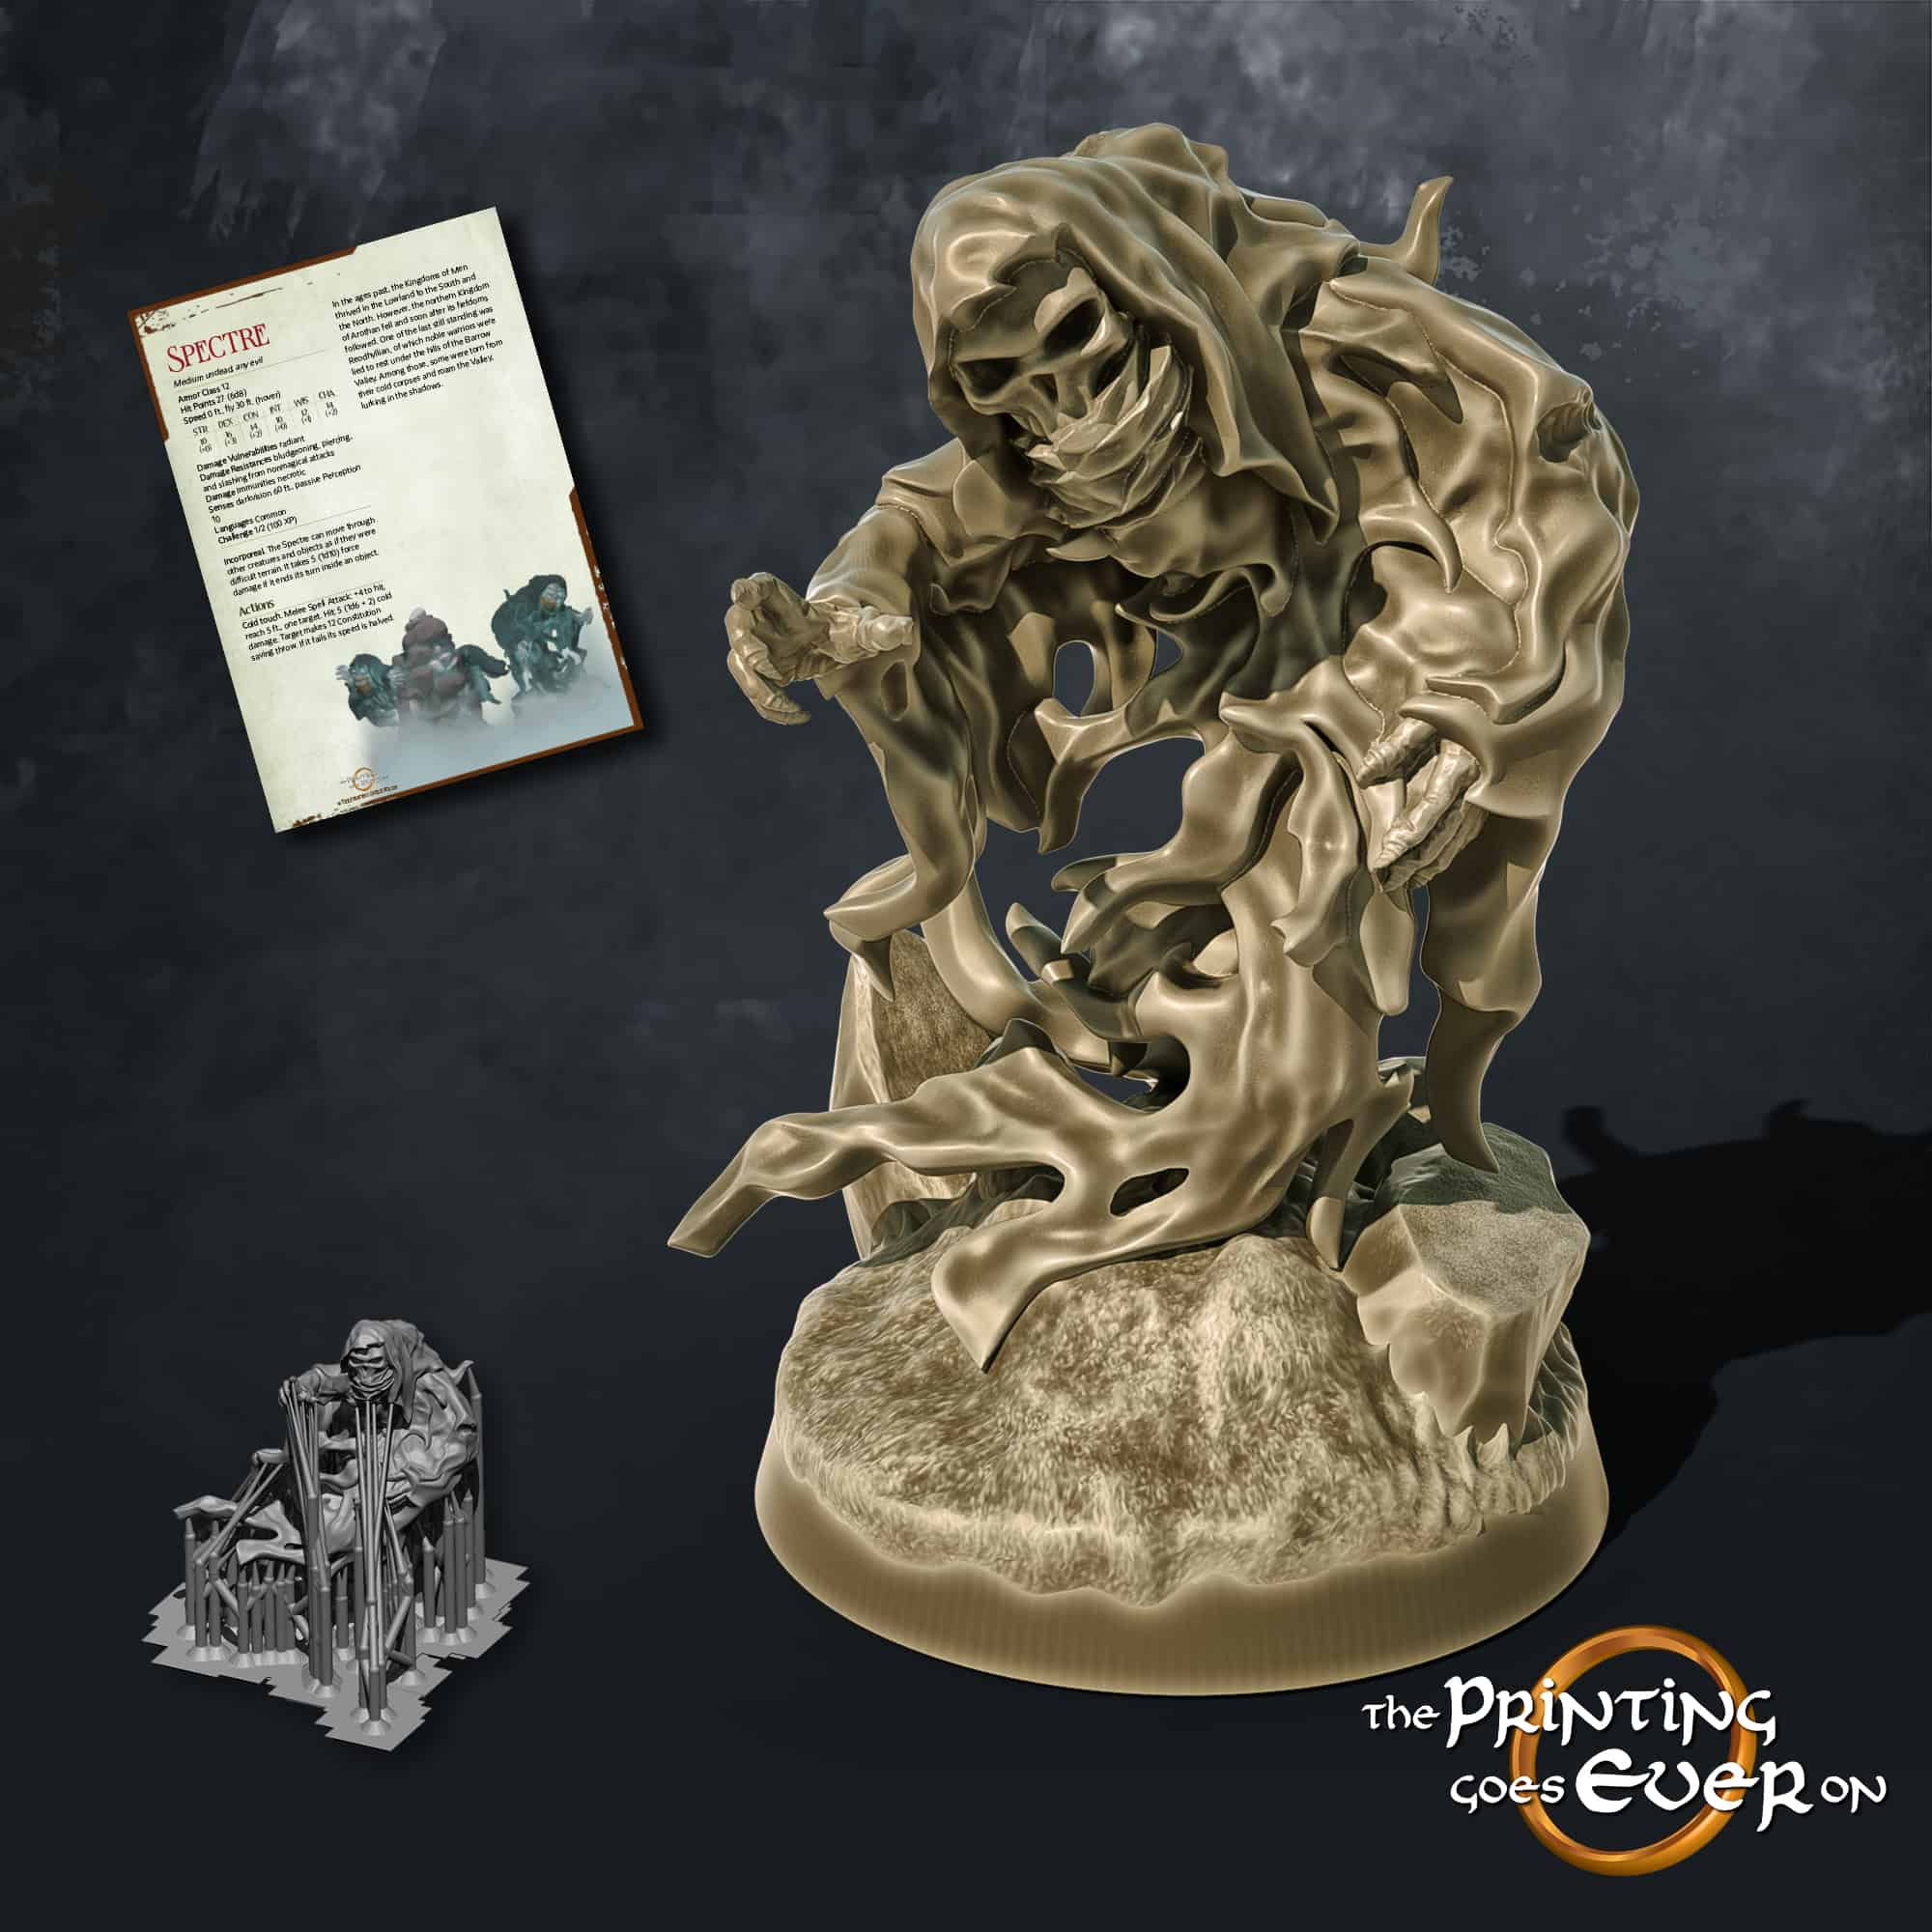 spectre reaching out on barrow 3d printable tabletop miniature from the printing goes ever on patreon august 2020 pack